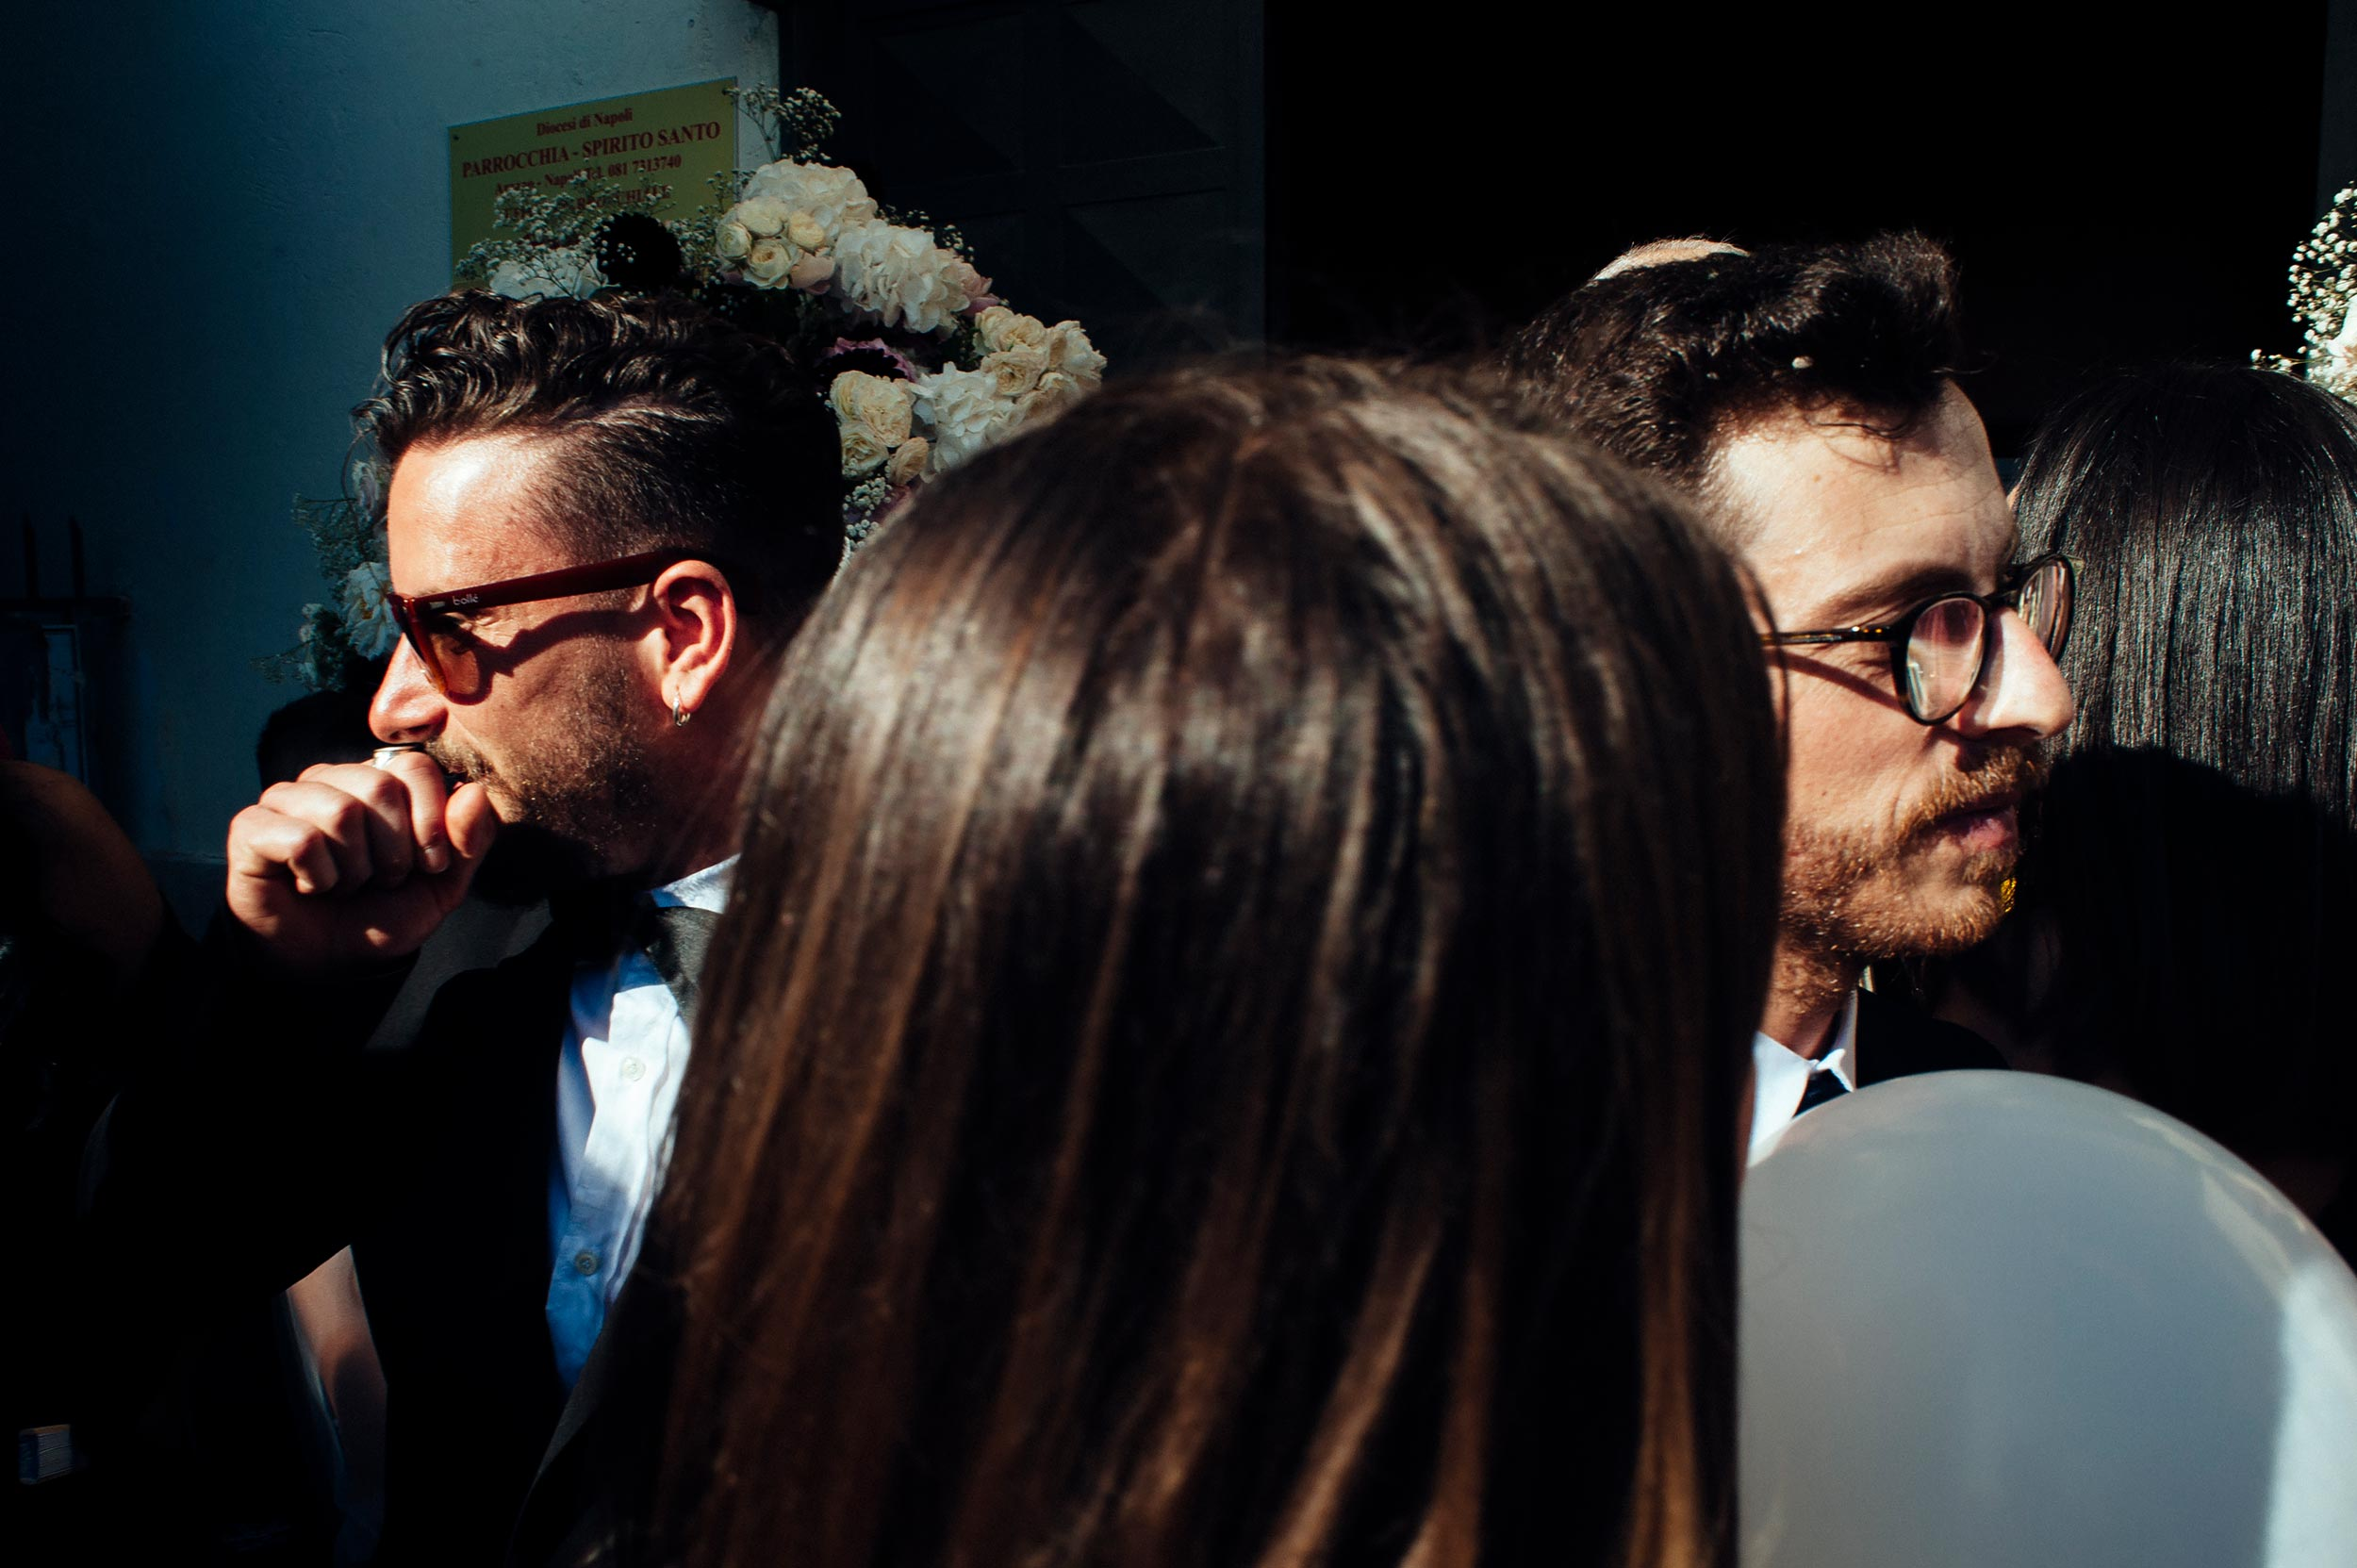 the-groom-and-his-brother-outside-the-church-street-photography-wedding-italy.jpg